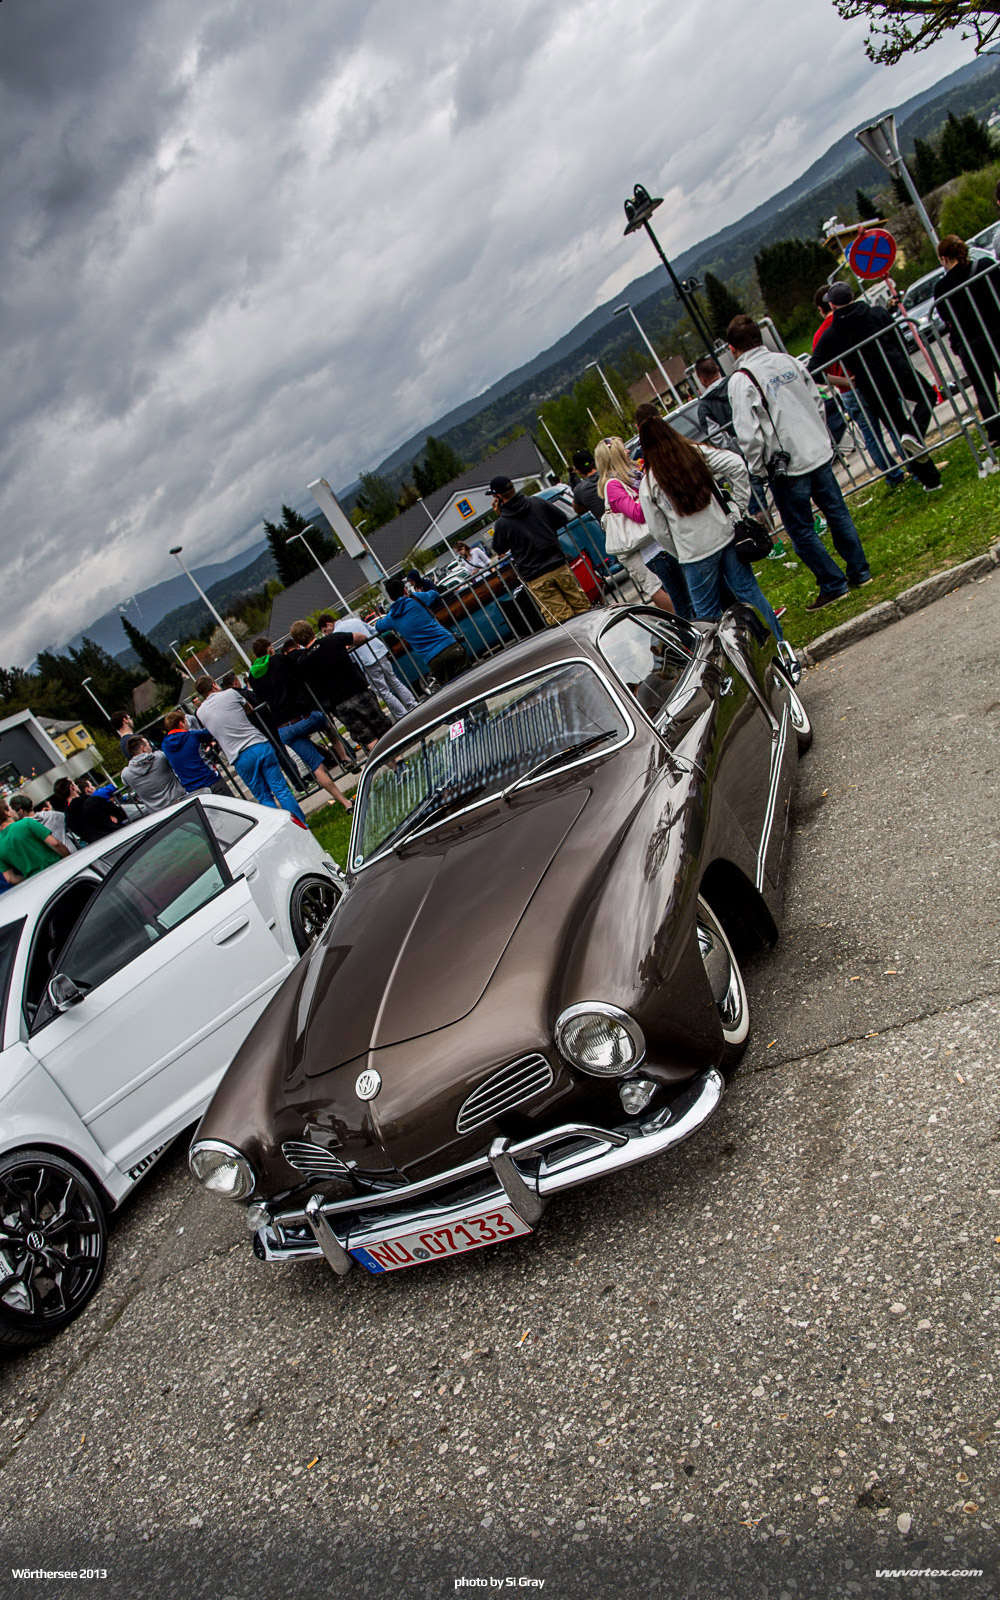 worthersee-2013-gallery-si-gray-005